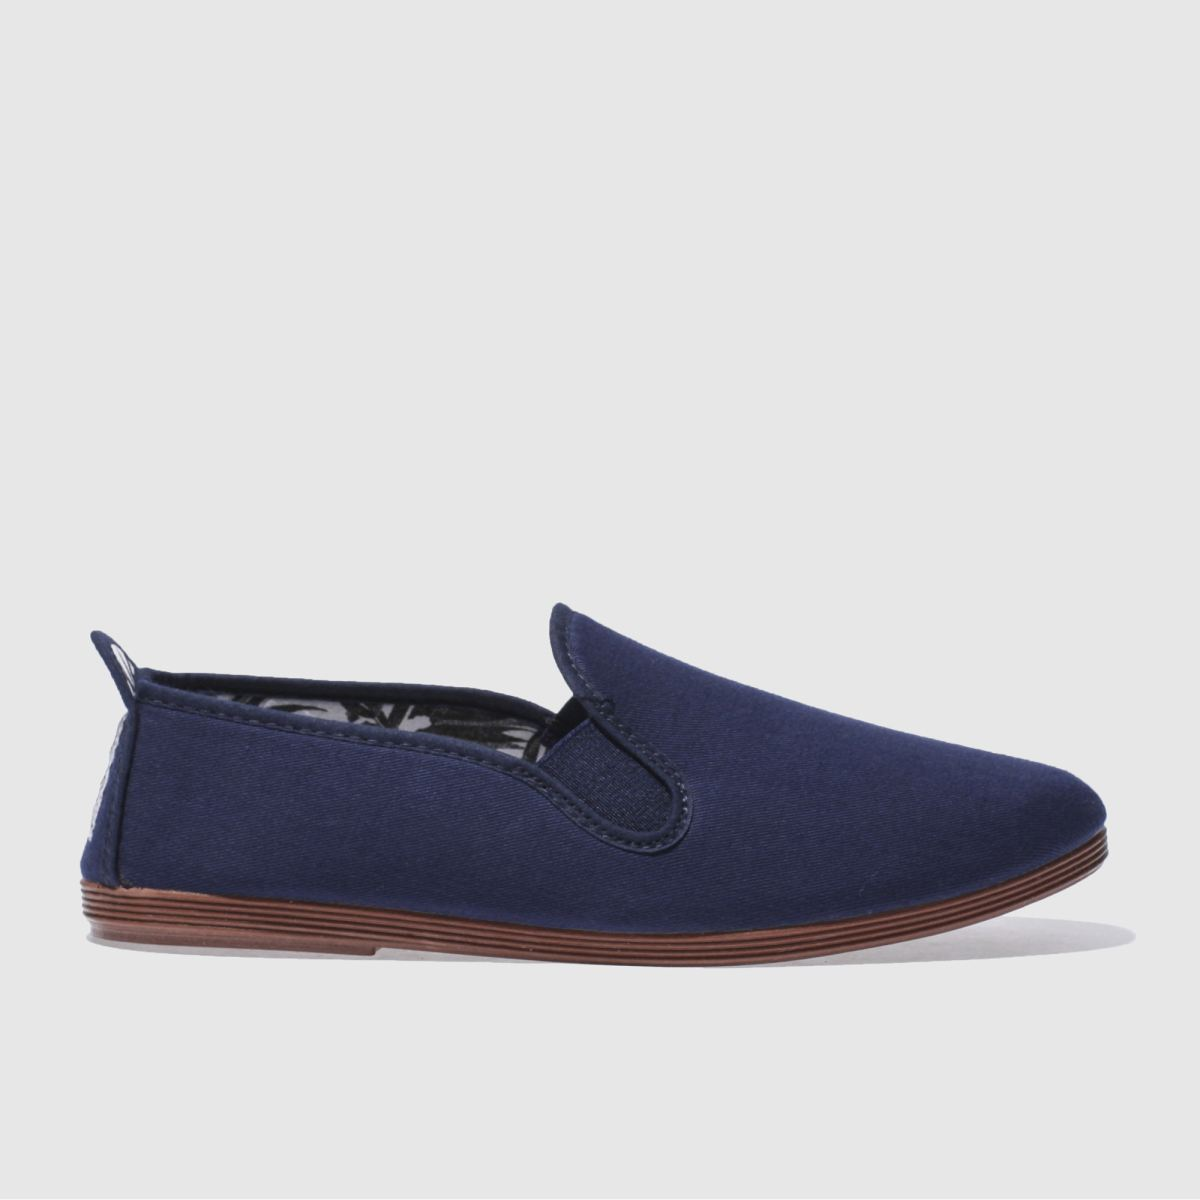 Flossy Flossy Navy Plimsoll Flat Shoes